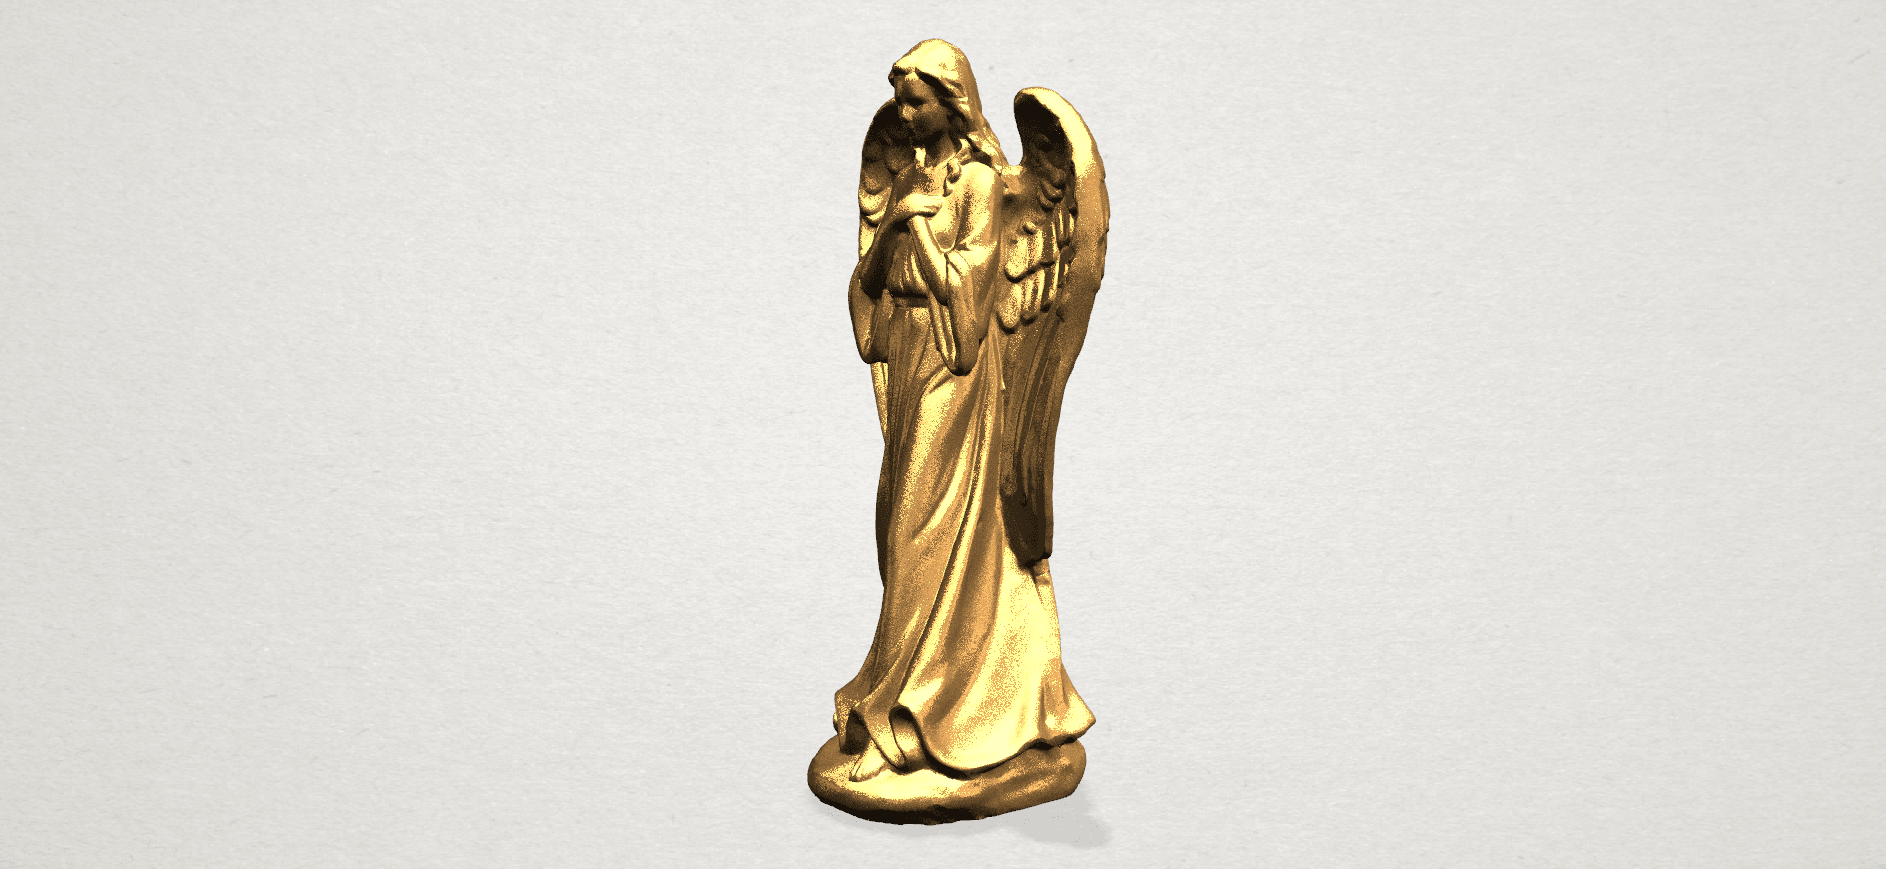 Angel A02.png Download free STL file Angel 01 • 3D printer object, GeorgesNikkei